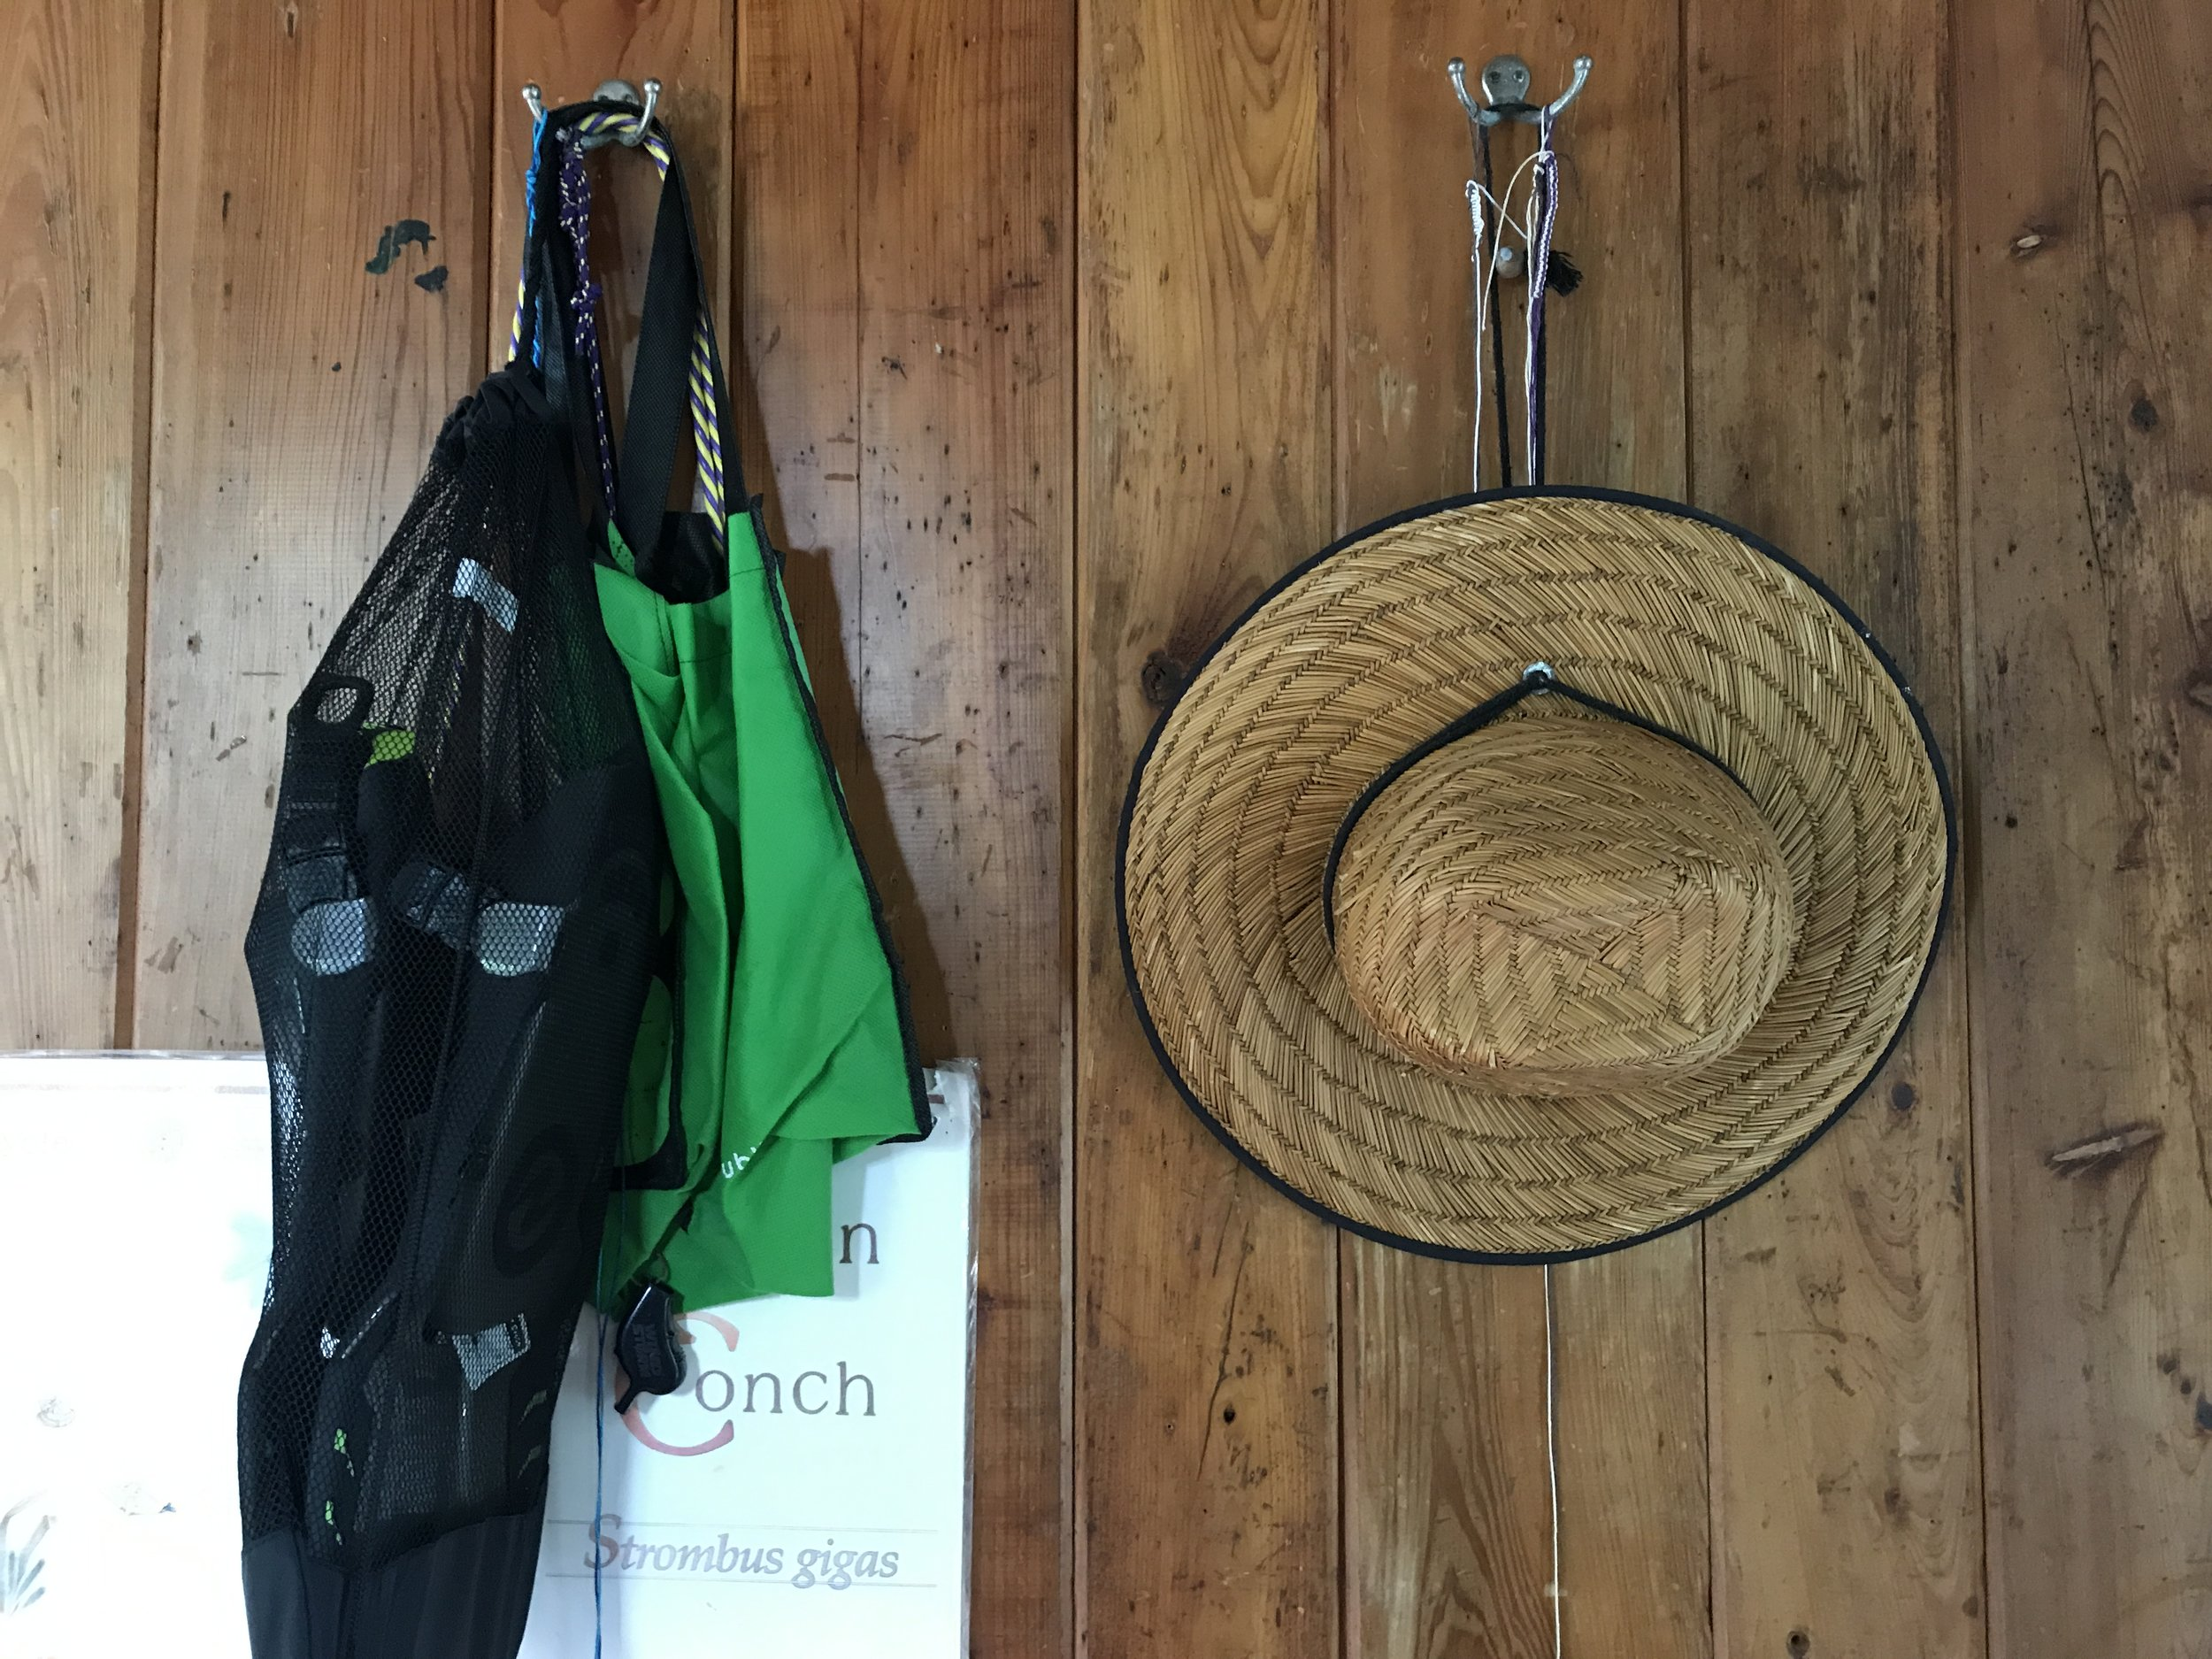 Remember to wear a hat when you paddle - we're partial to the big straw ones that provide plenty of shade!